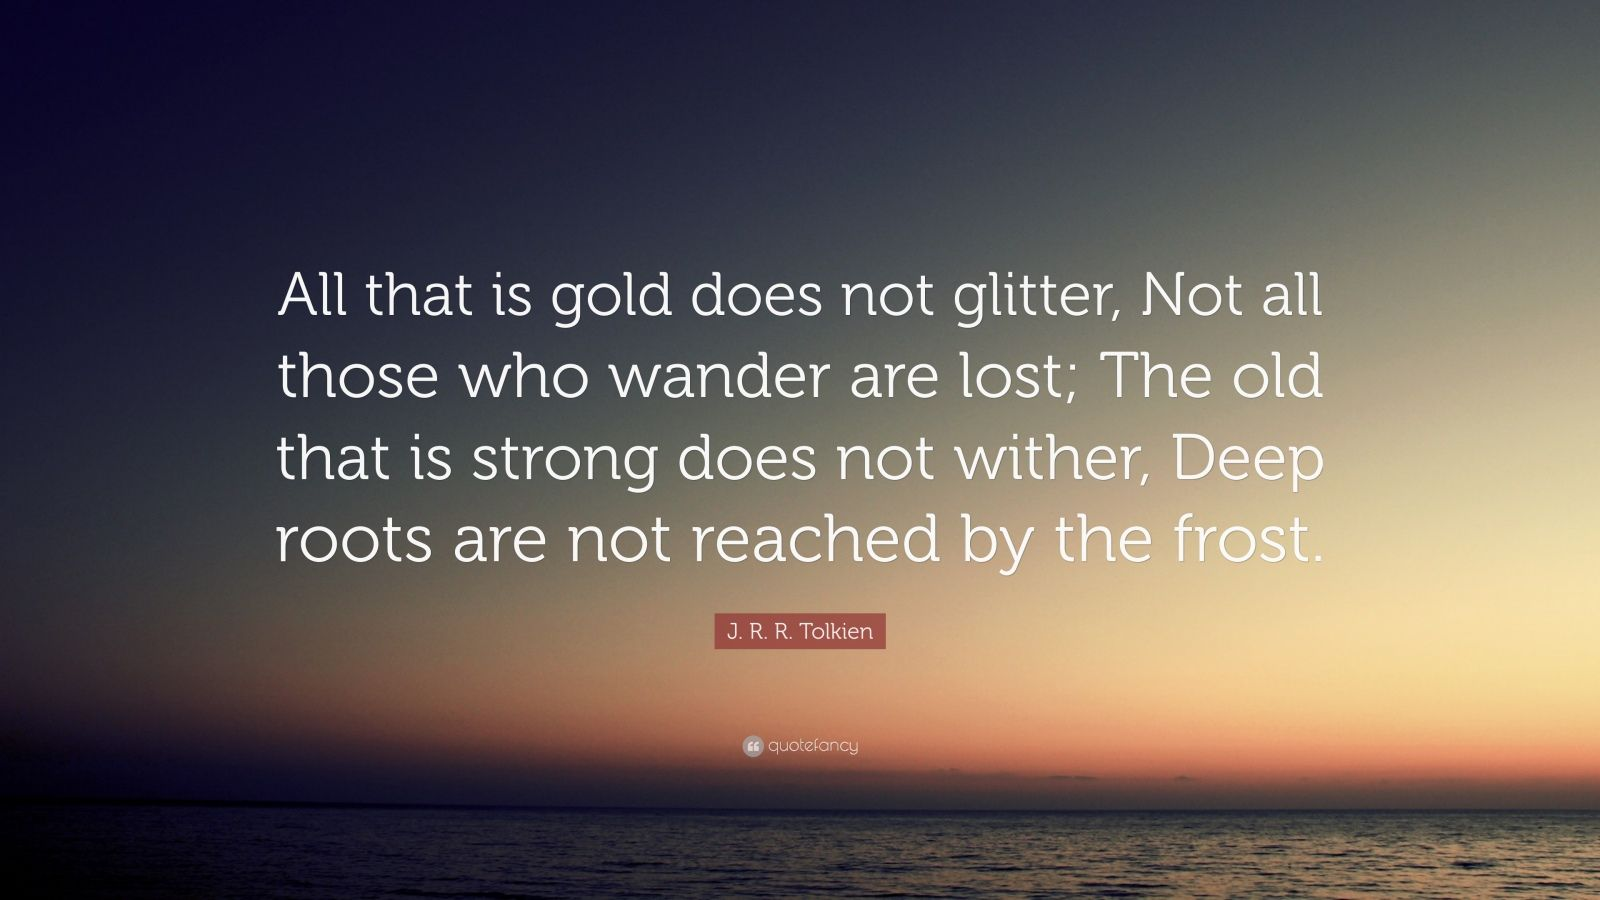 Desktop Wallpaper Tolkien Quote J R R Tolkien Quote All That Is Gold Does Not Glitter